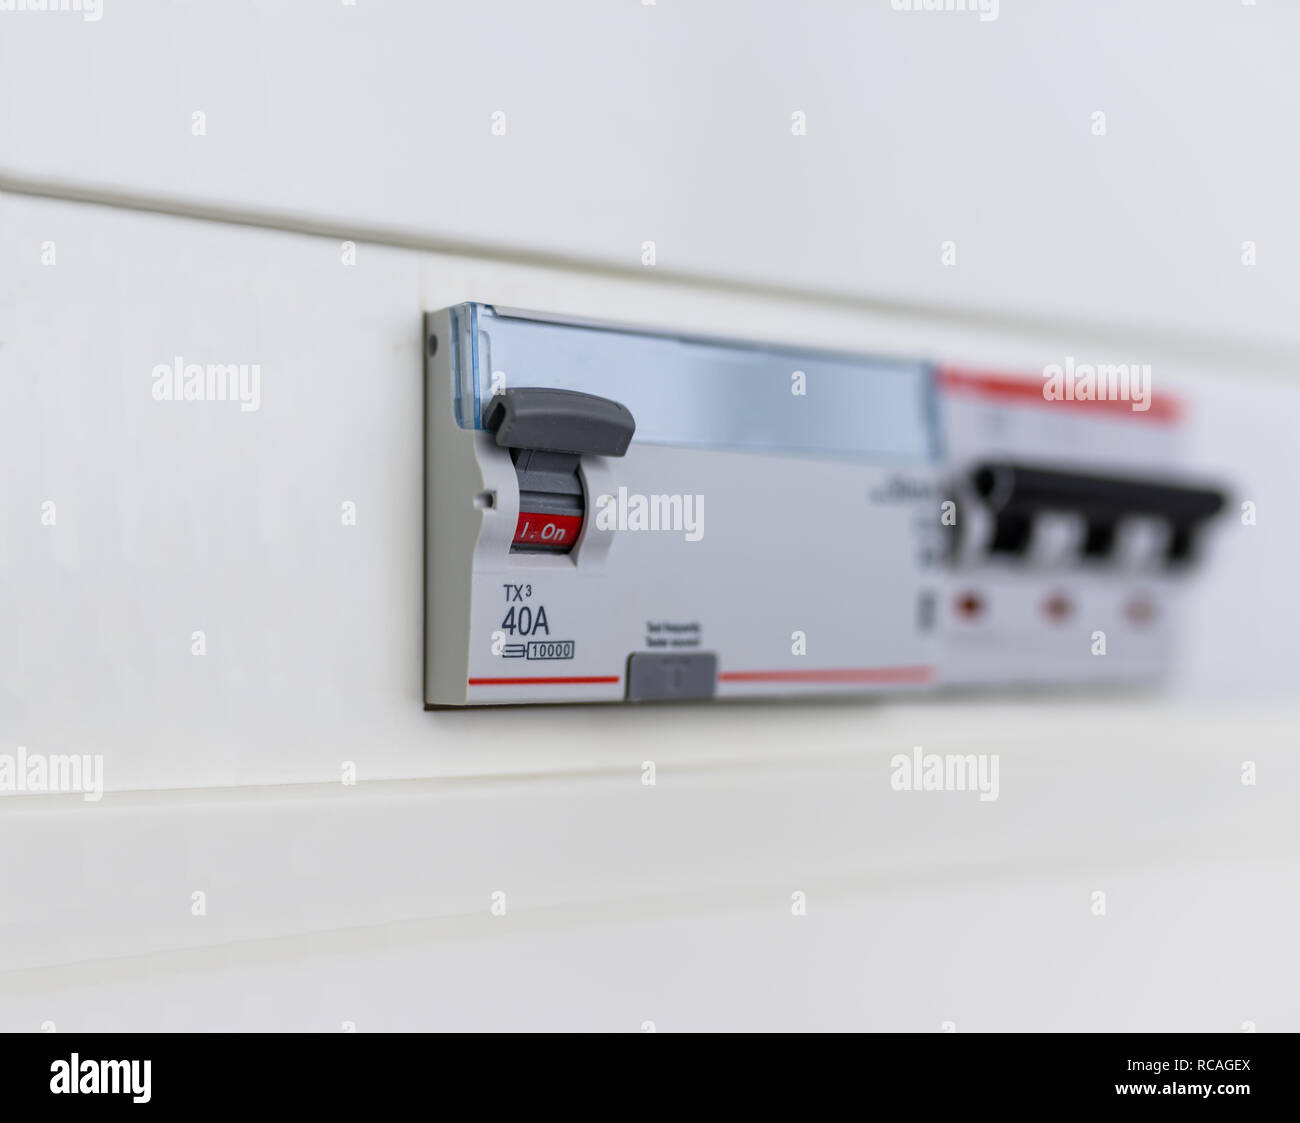 Fuse Box Circuit Breaker Stock Photos Main Automatic Breakers In A Power Control Panel Image